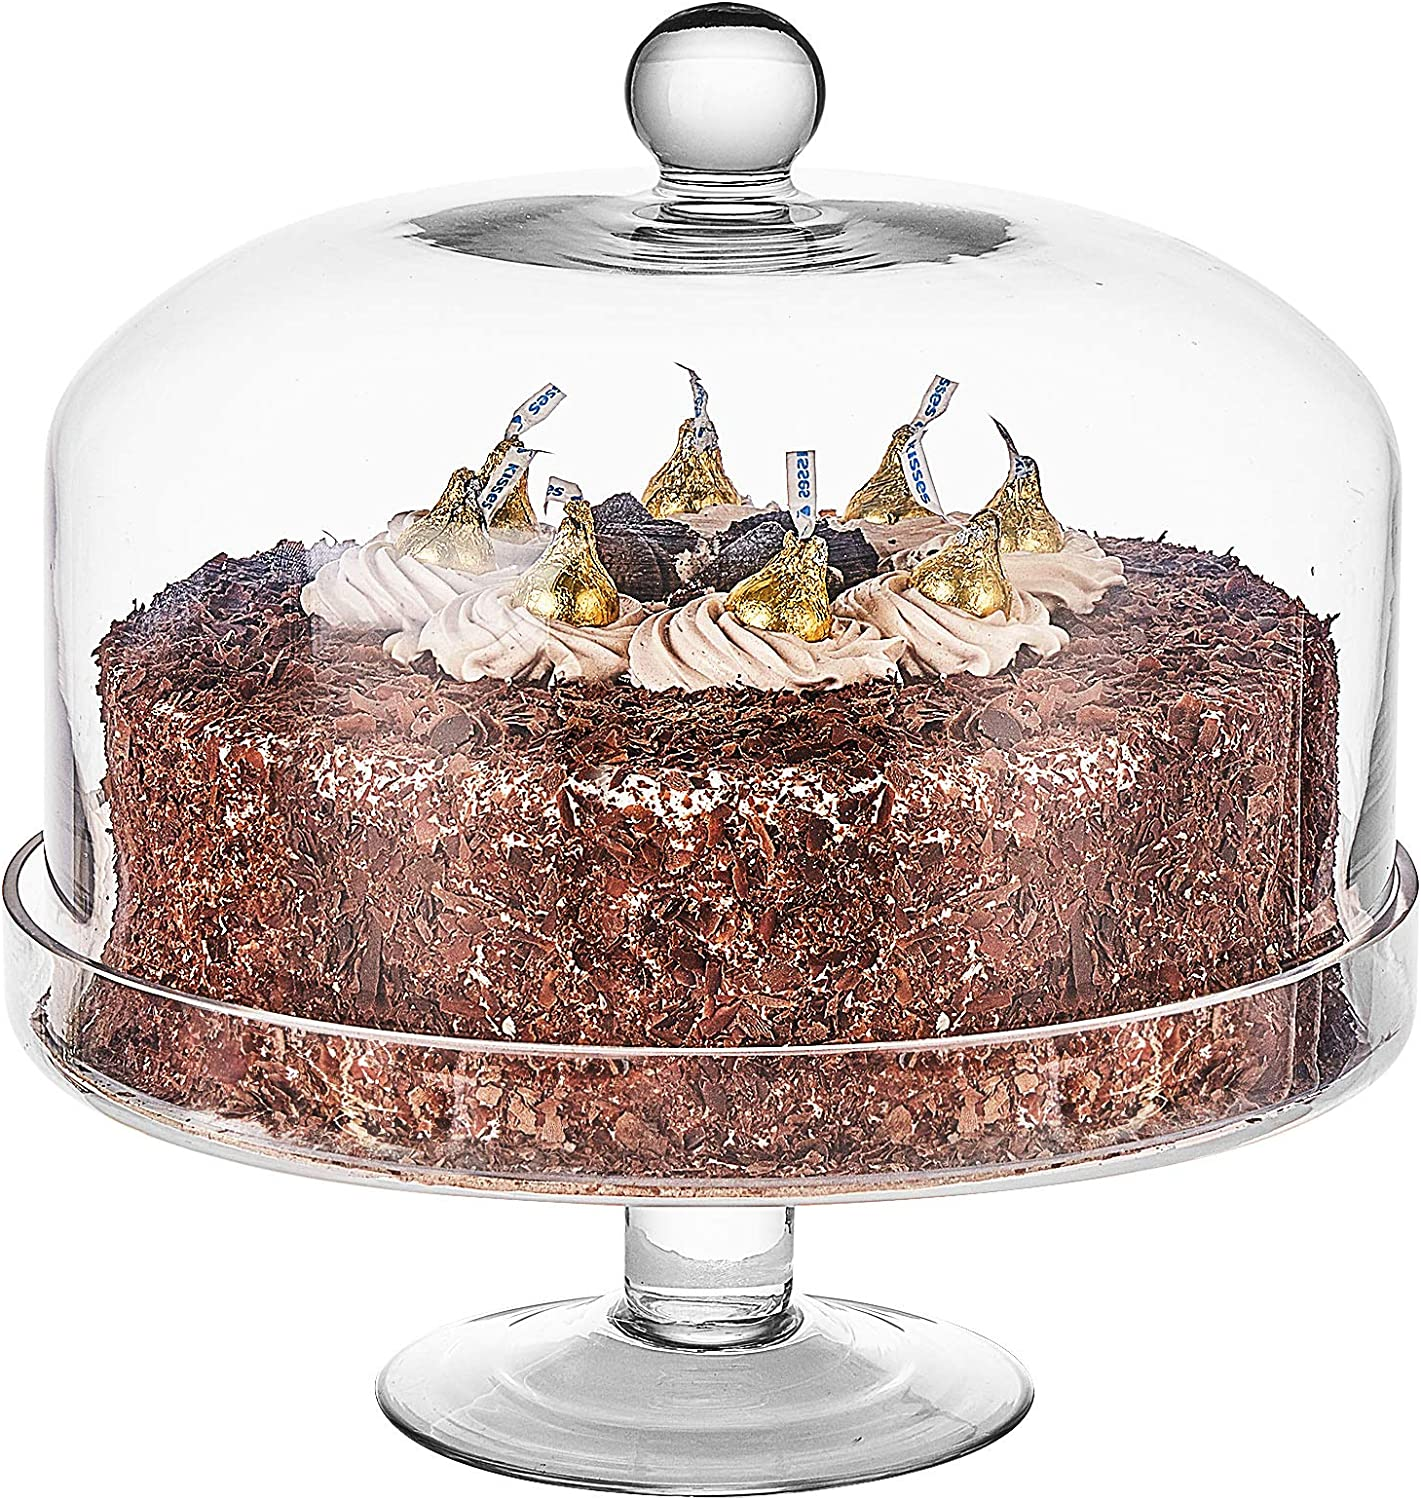 Handmade Clear Glass 倉庫 Cake 全商品オープニング価格 Stand Dome Multifunctional with Platte